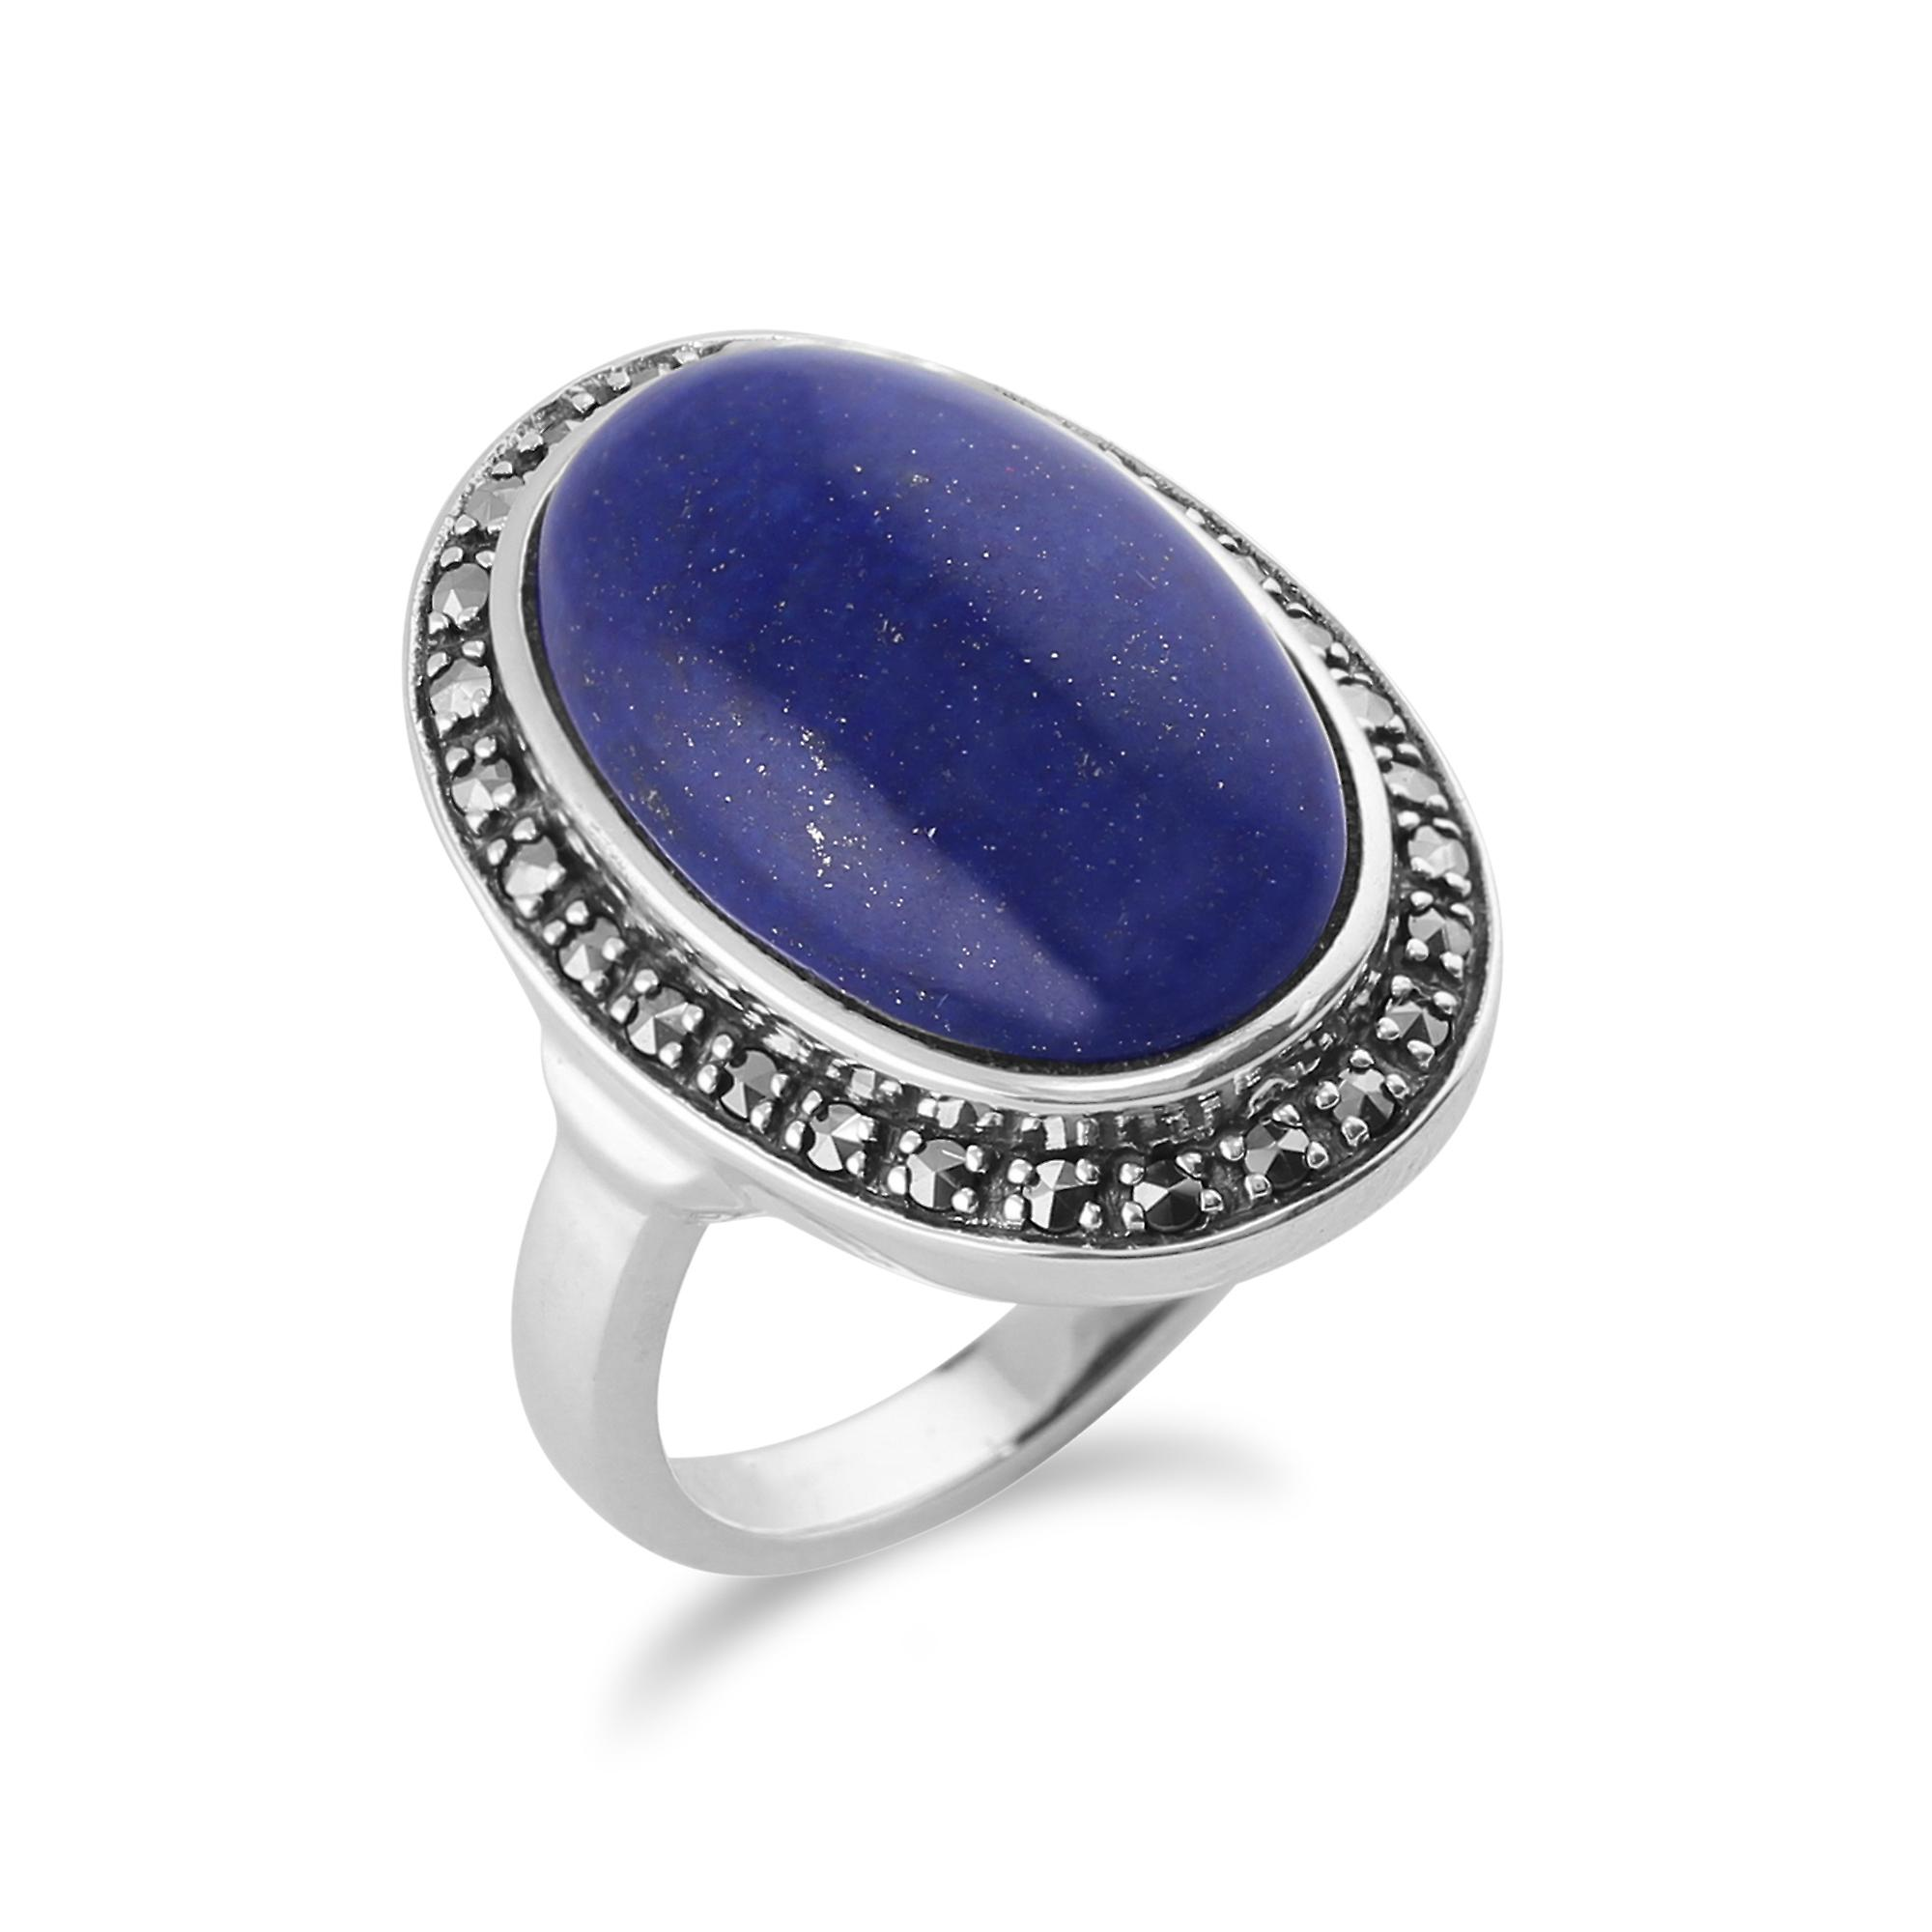 Lapis Lazuli Sparkling Marcasite Ring in 925 Sterling Silver